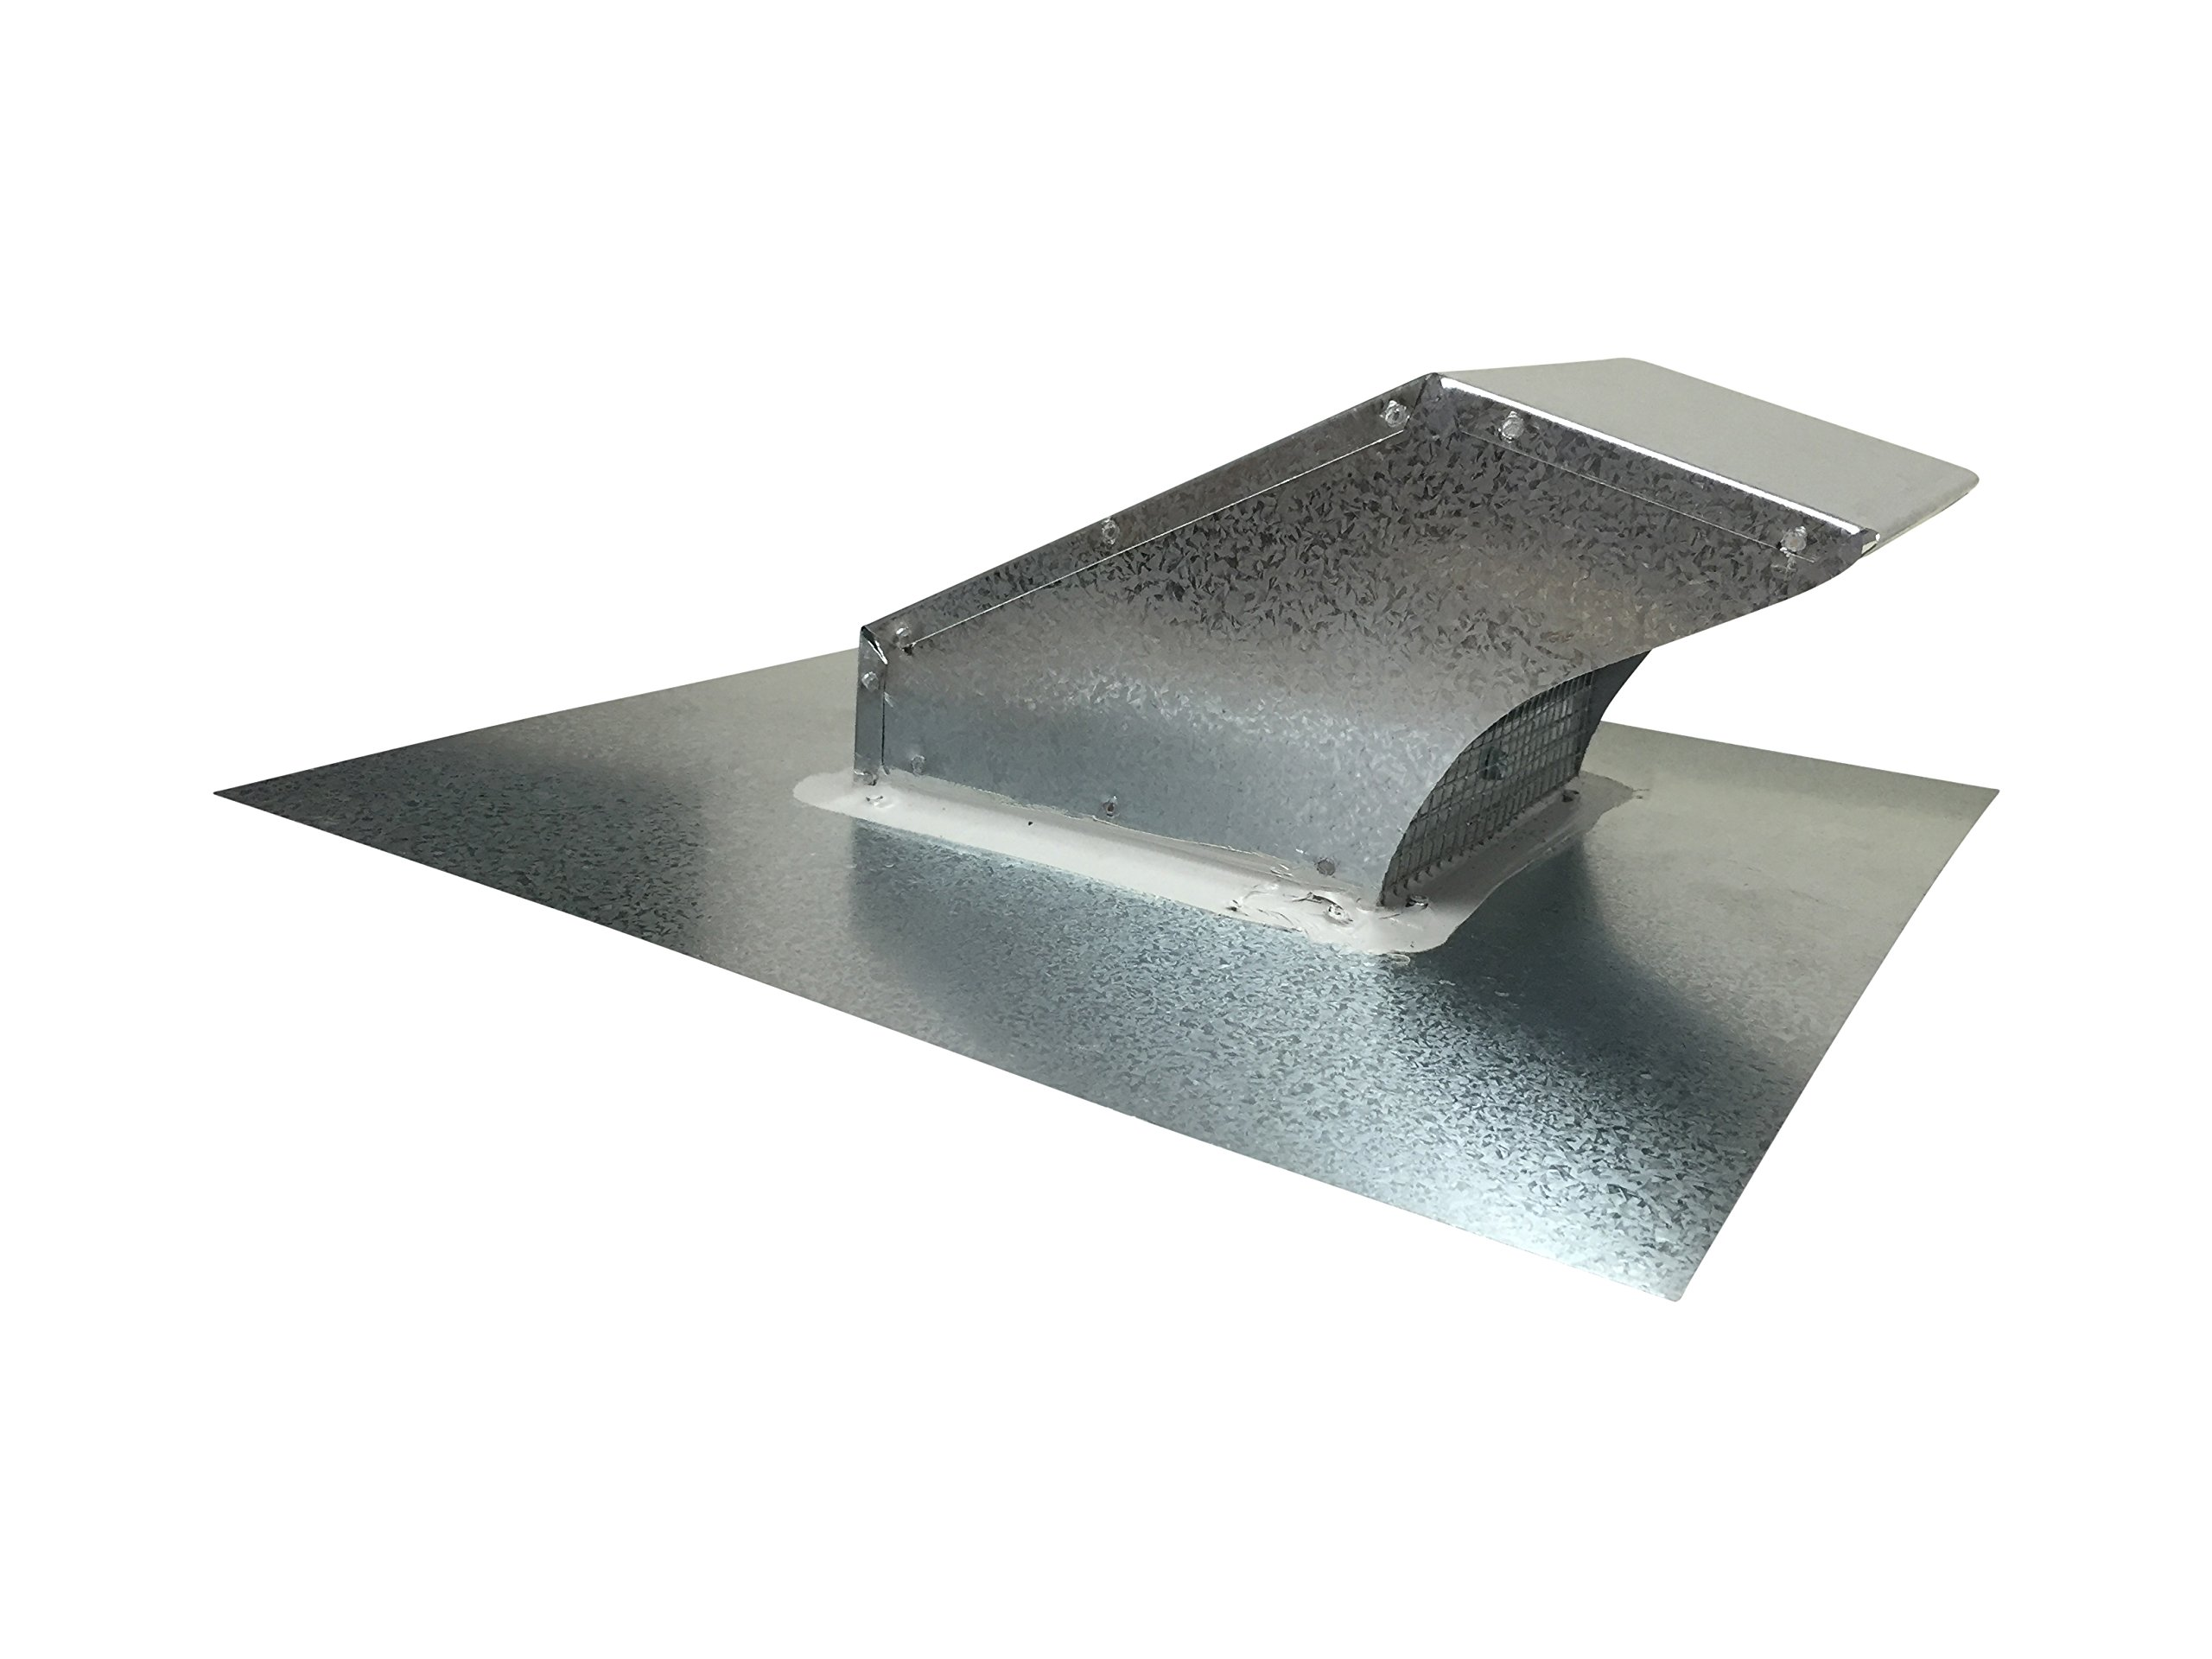 5 Inch Roof Vent Hood Cap Galvanized Damper & Screen - Vent Works by Vent Works (Image #2)